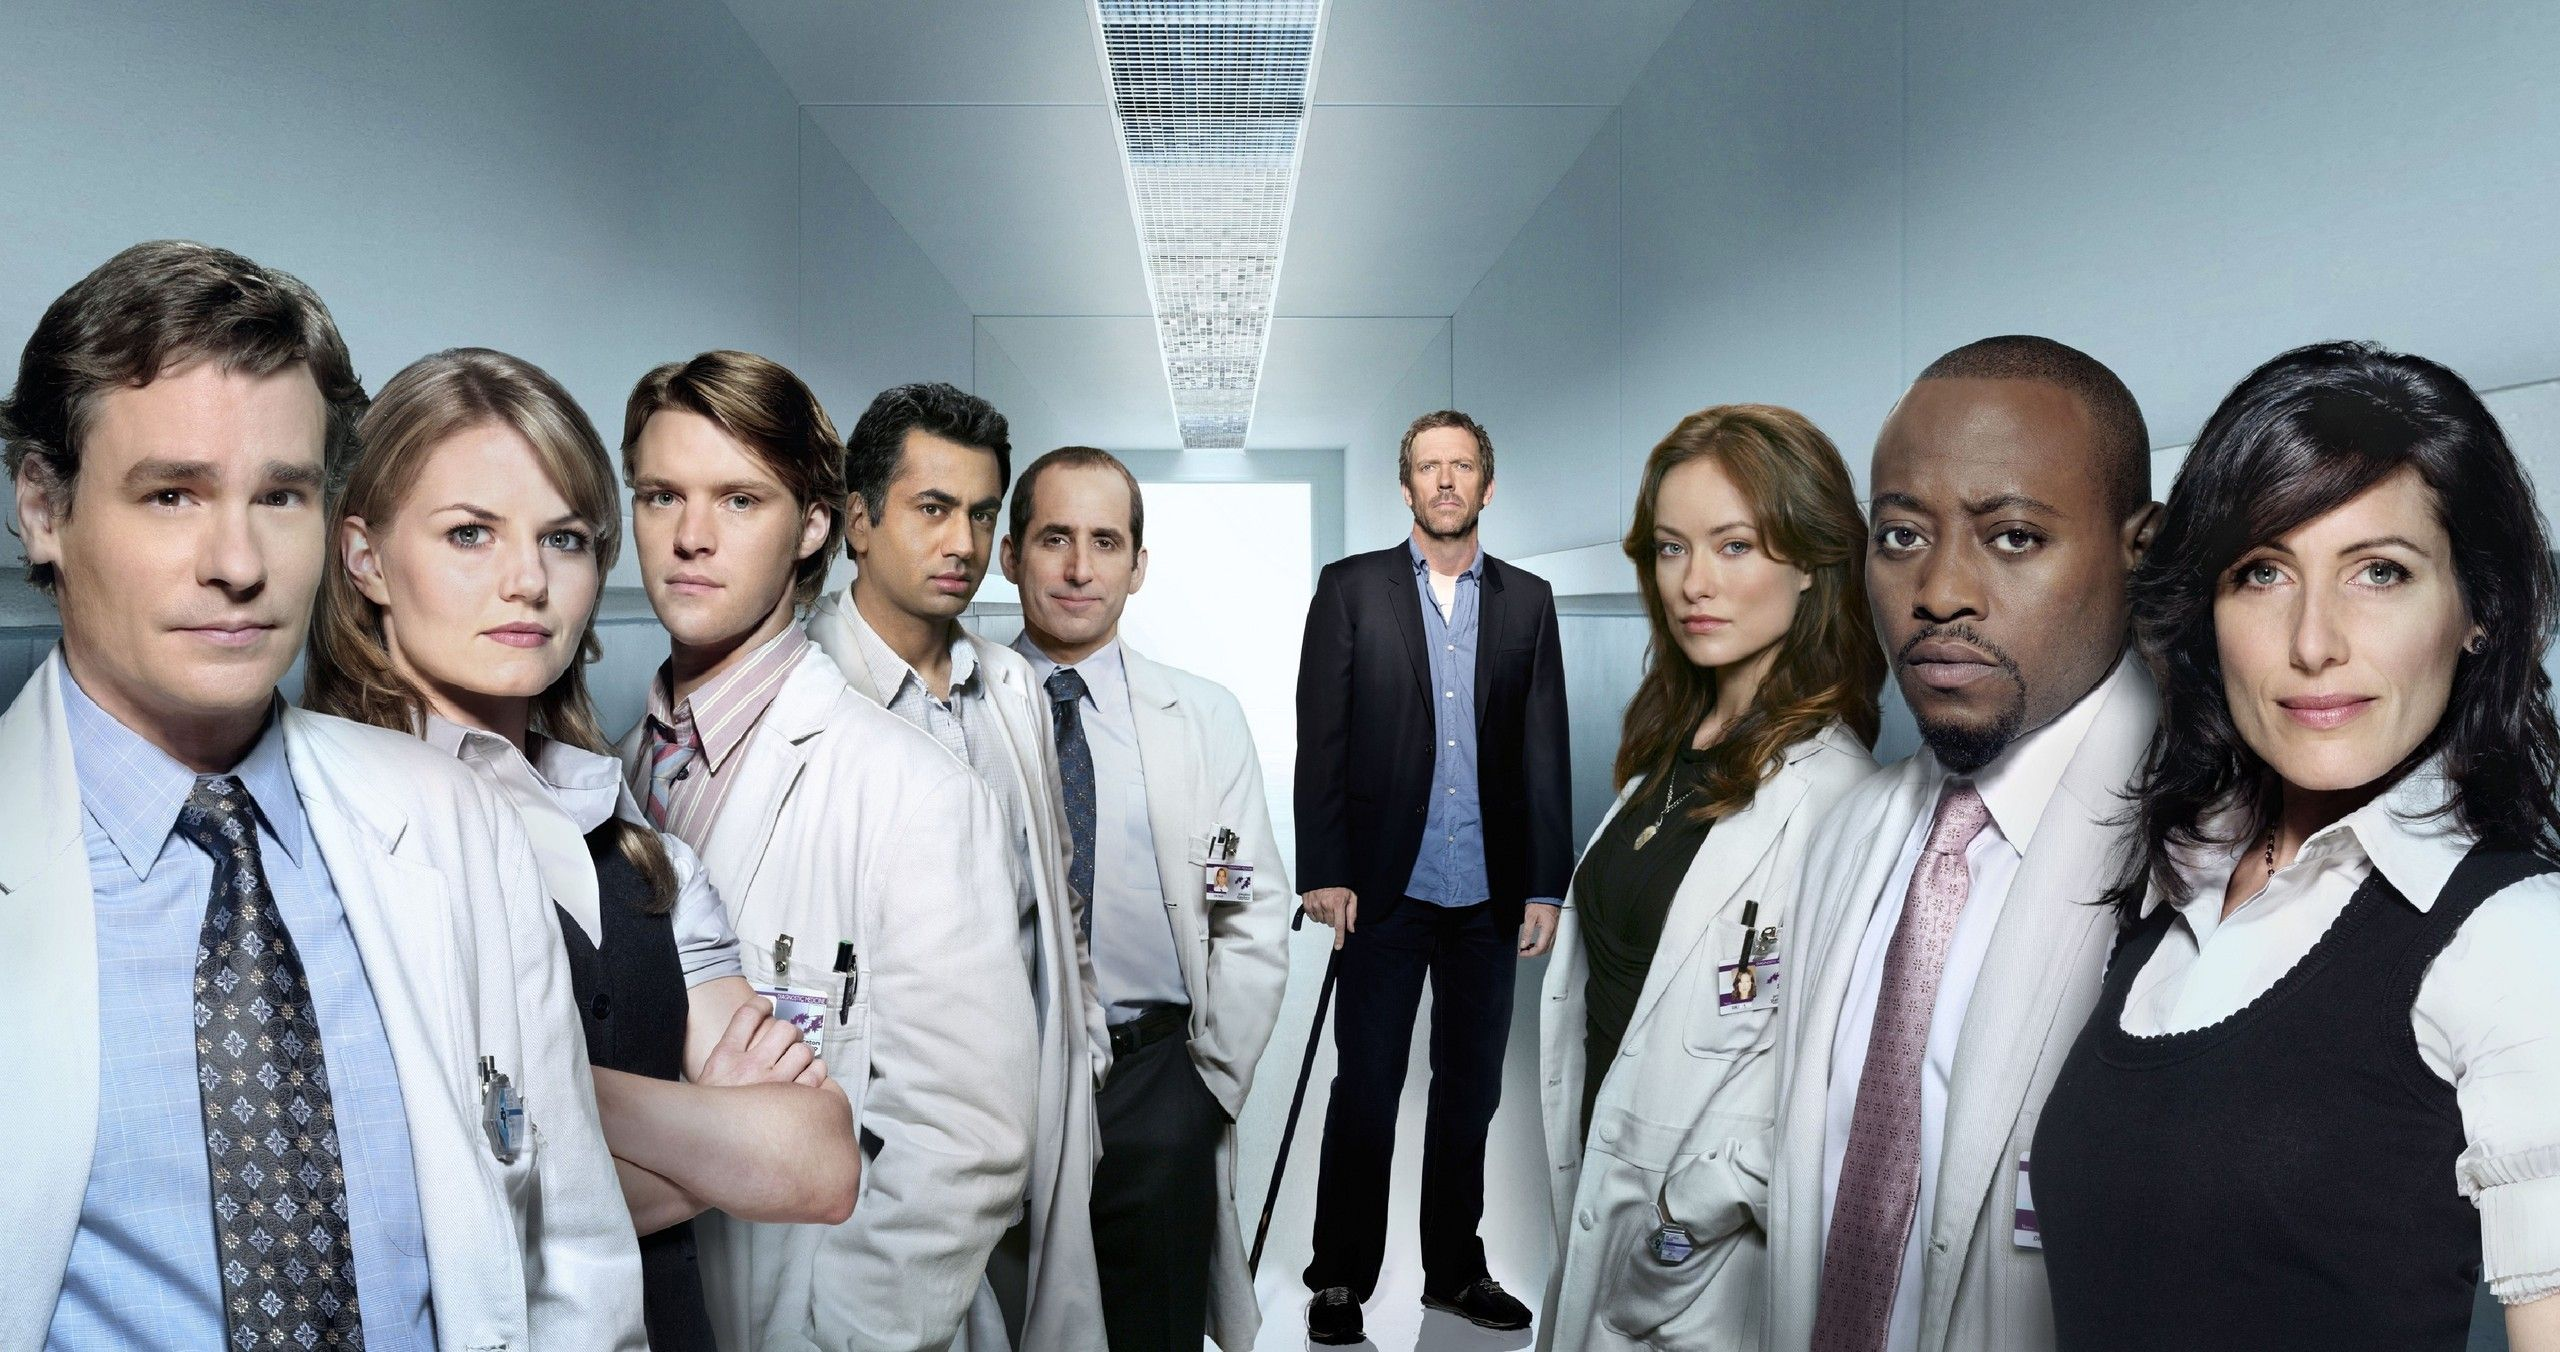 House M.D. House MD Cast Wallpaper Doctor house